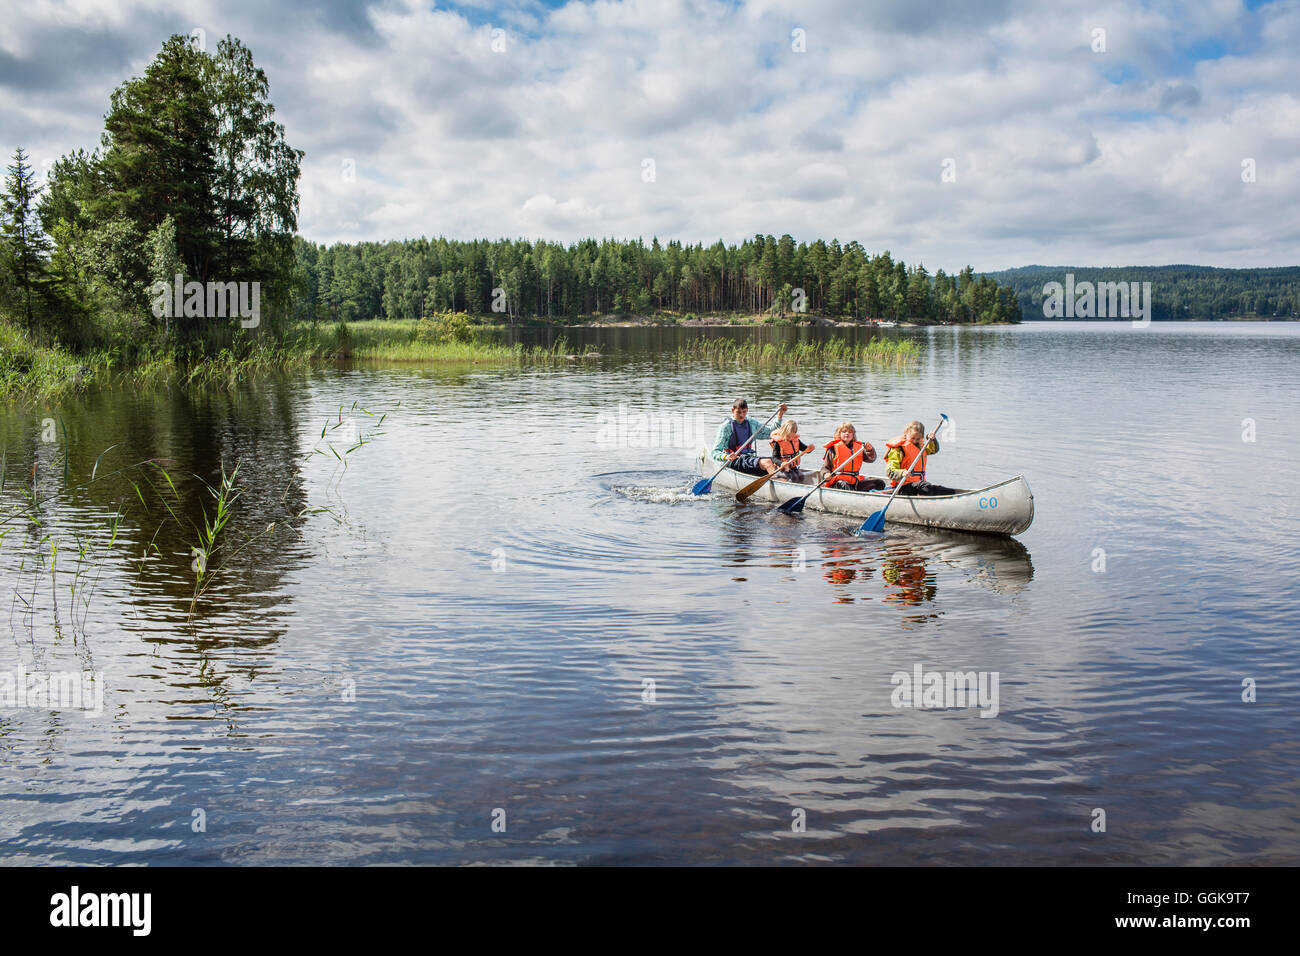 Children in a canoe on lake Vaermeln, Vaermland, Sweden - Stock Image